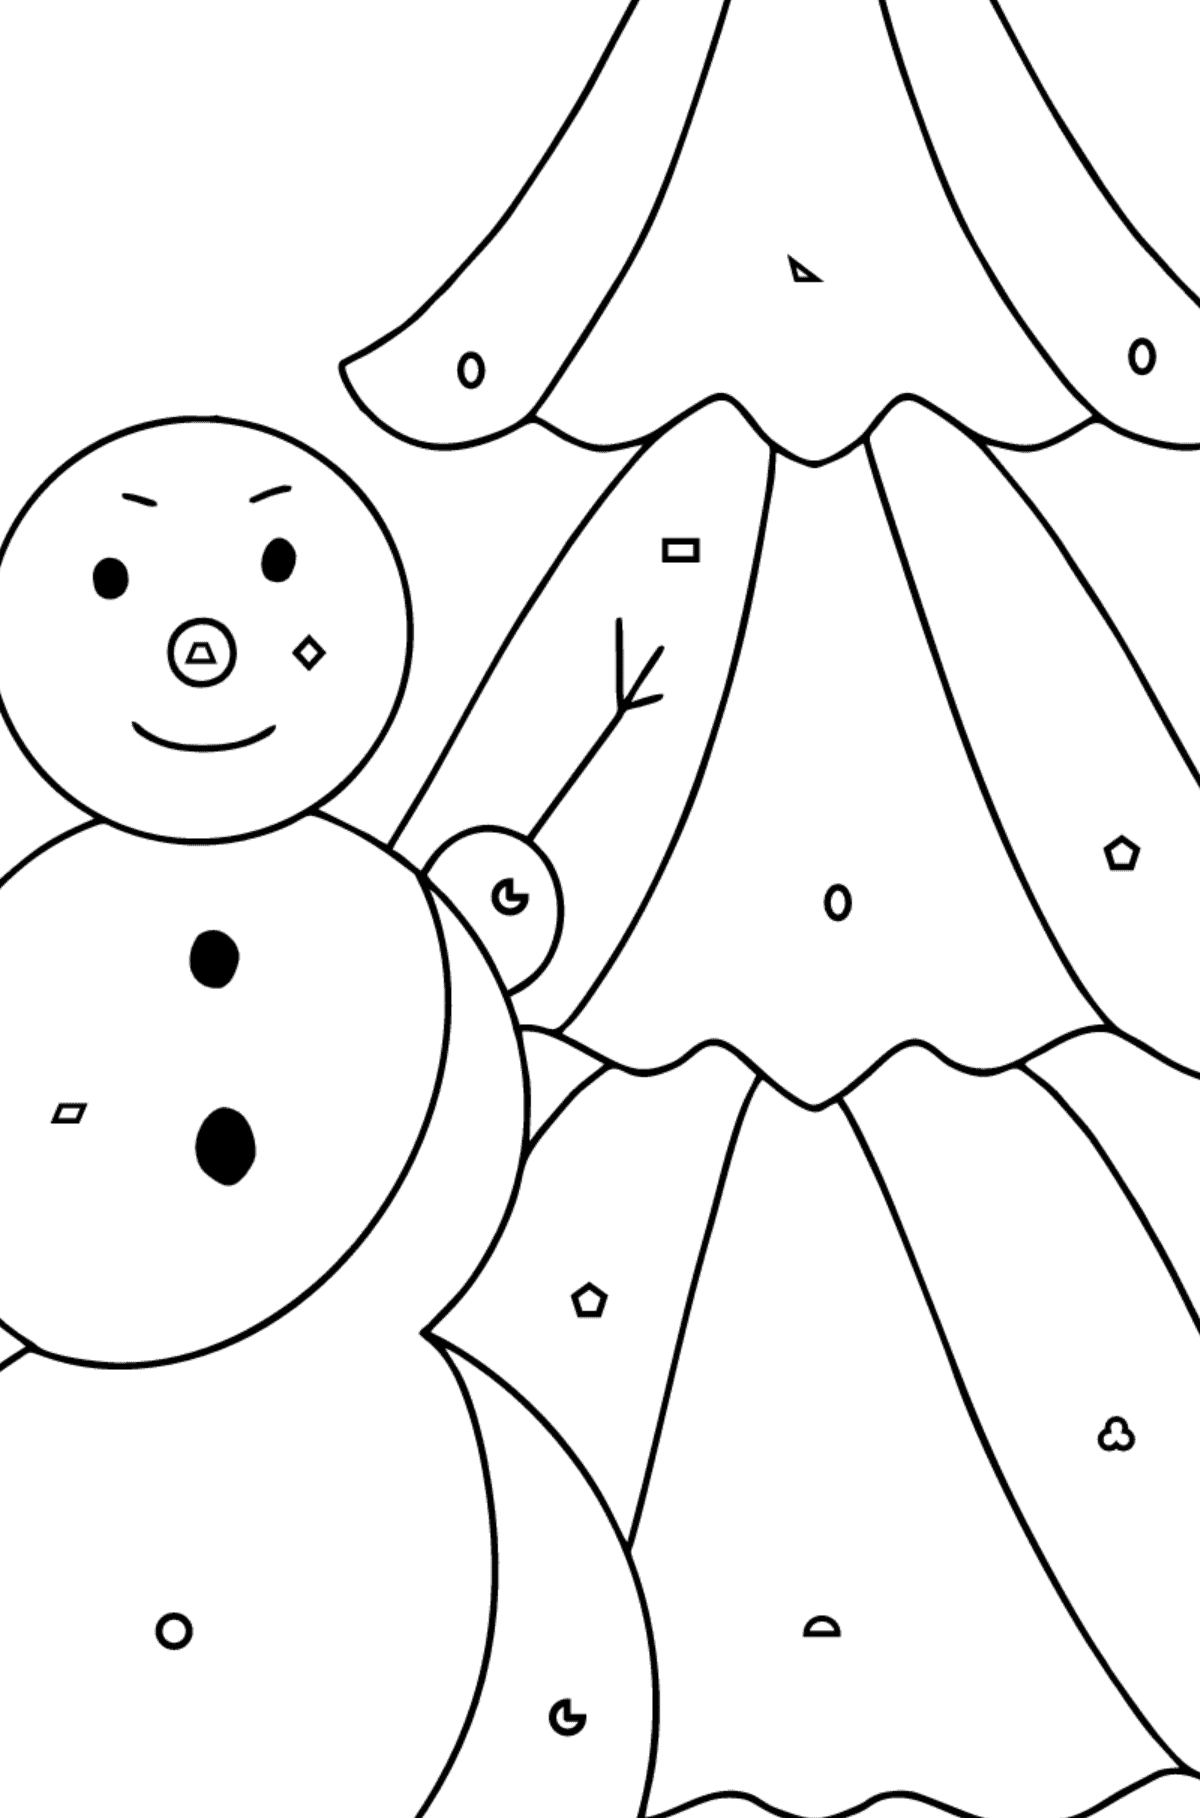 Winter Coloring Page - A Snowman with a Beautiful Christmas Tree for Kids  - Color by Geometric Shapes